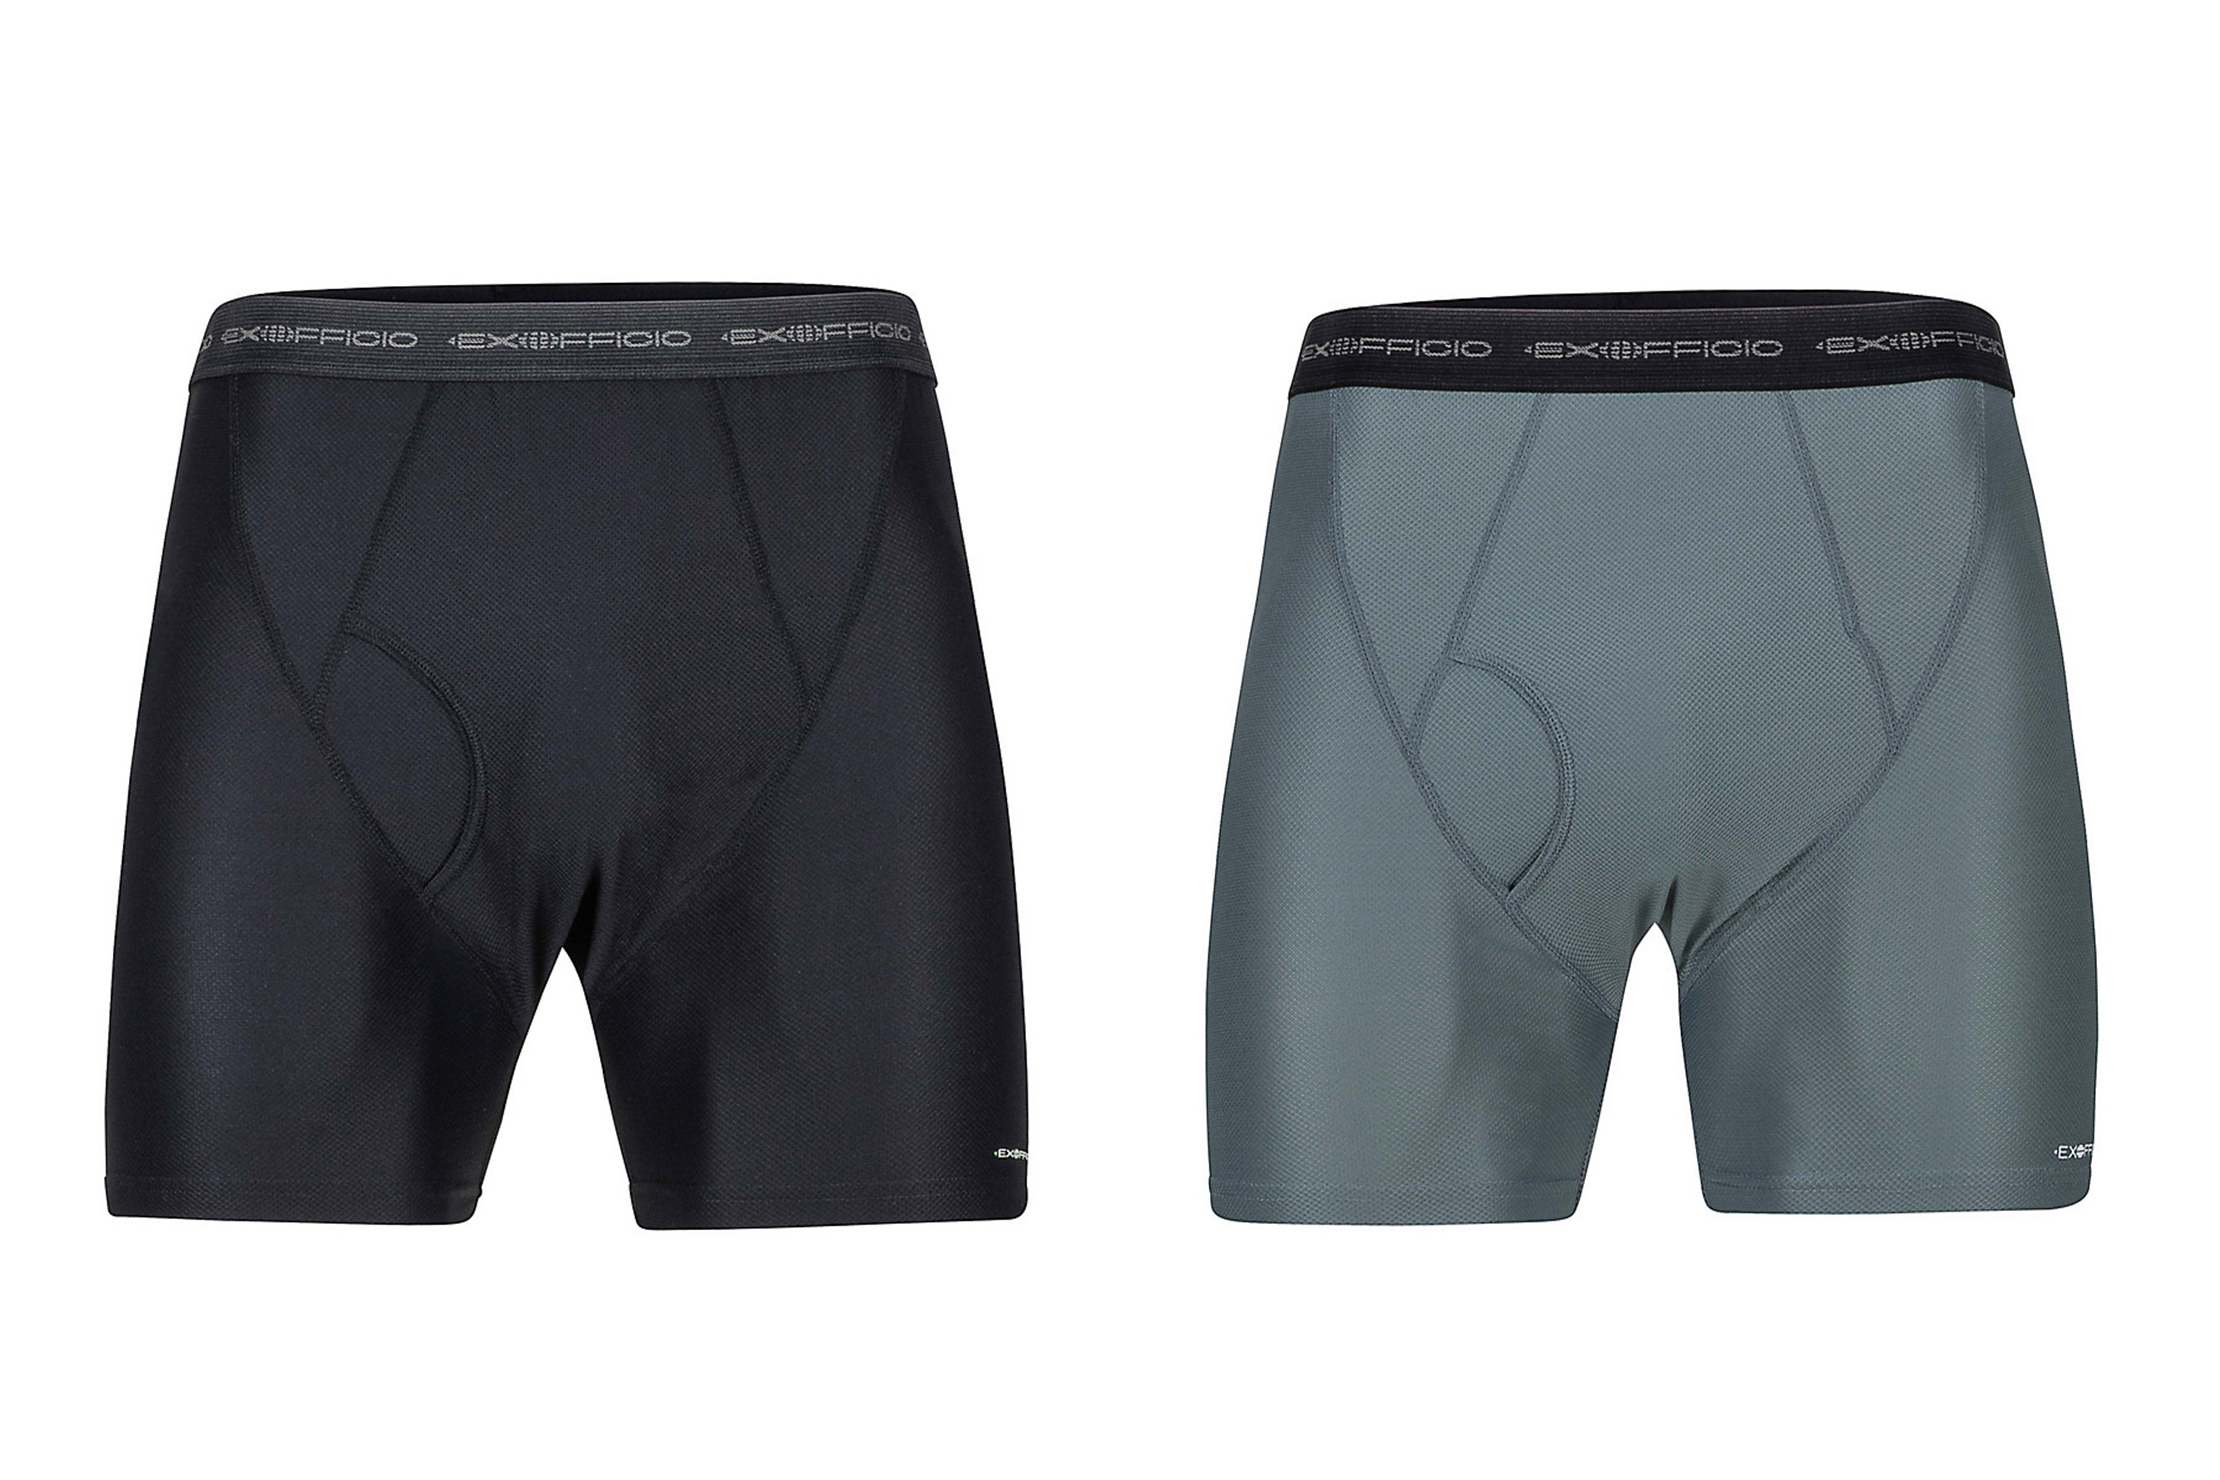 ExOfficio Give-N-Go Boxer Brief In Black And Charcoal